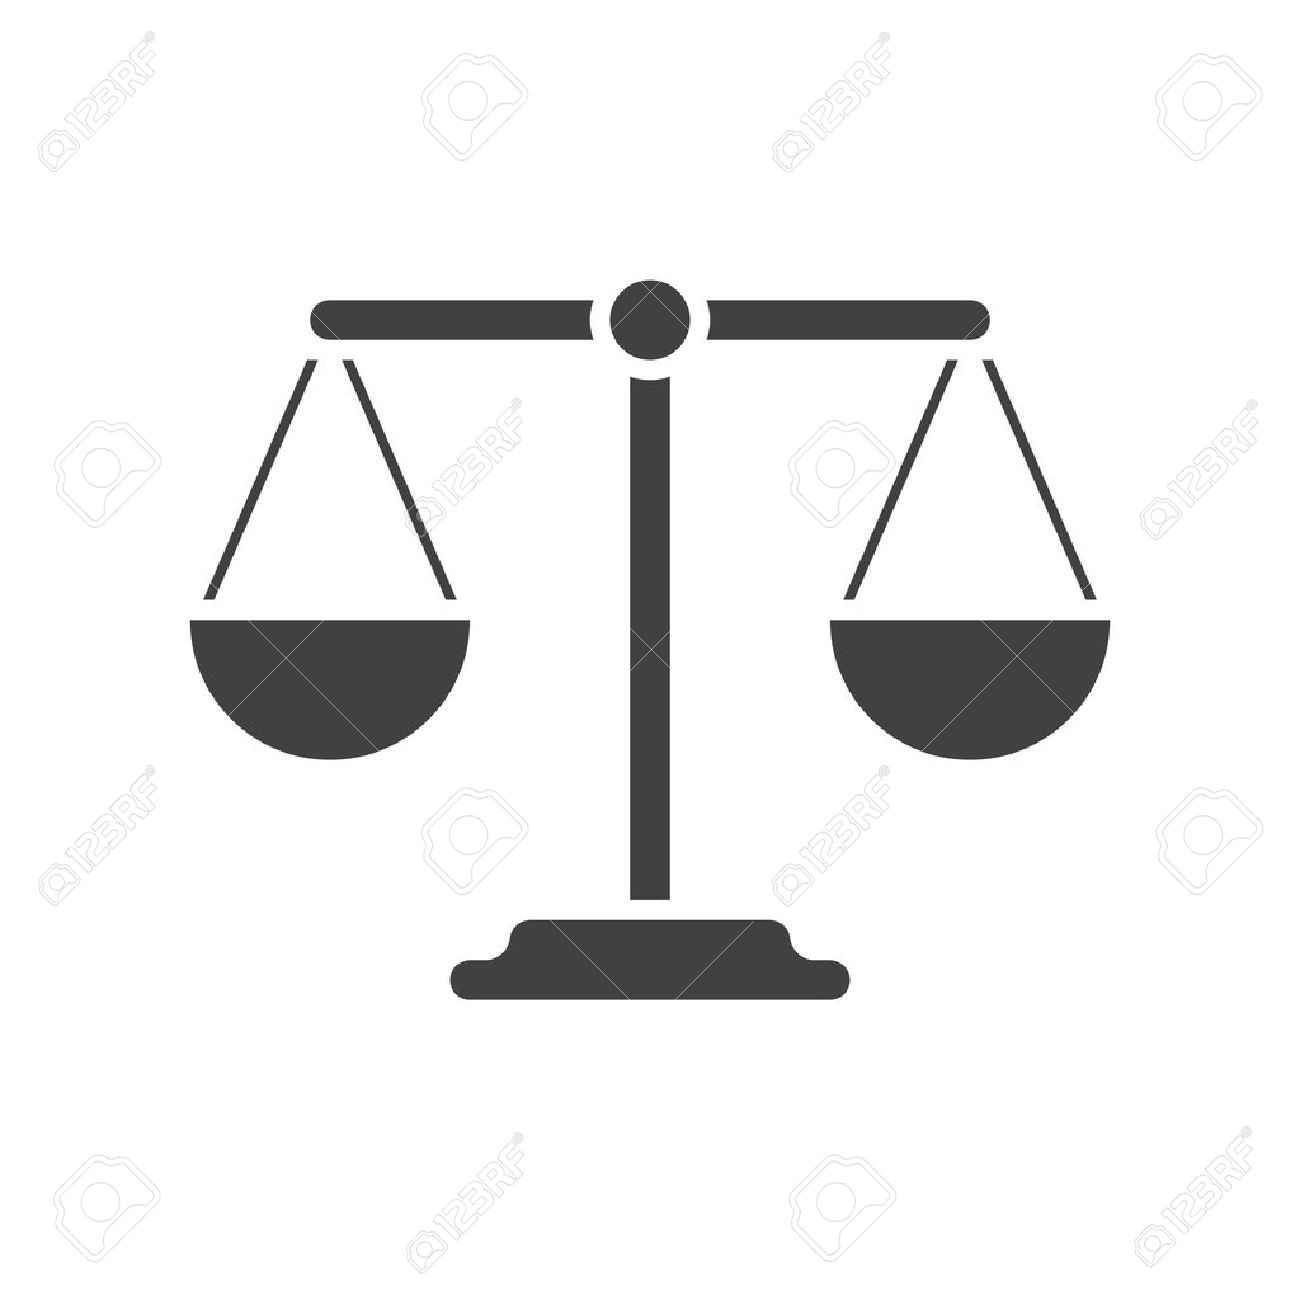 Integrity stock photos royalty free business images balance icon flat design biocorpaavc Image collections